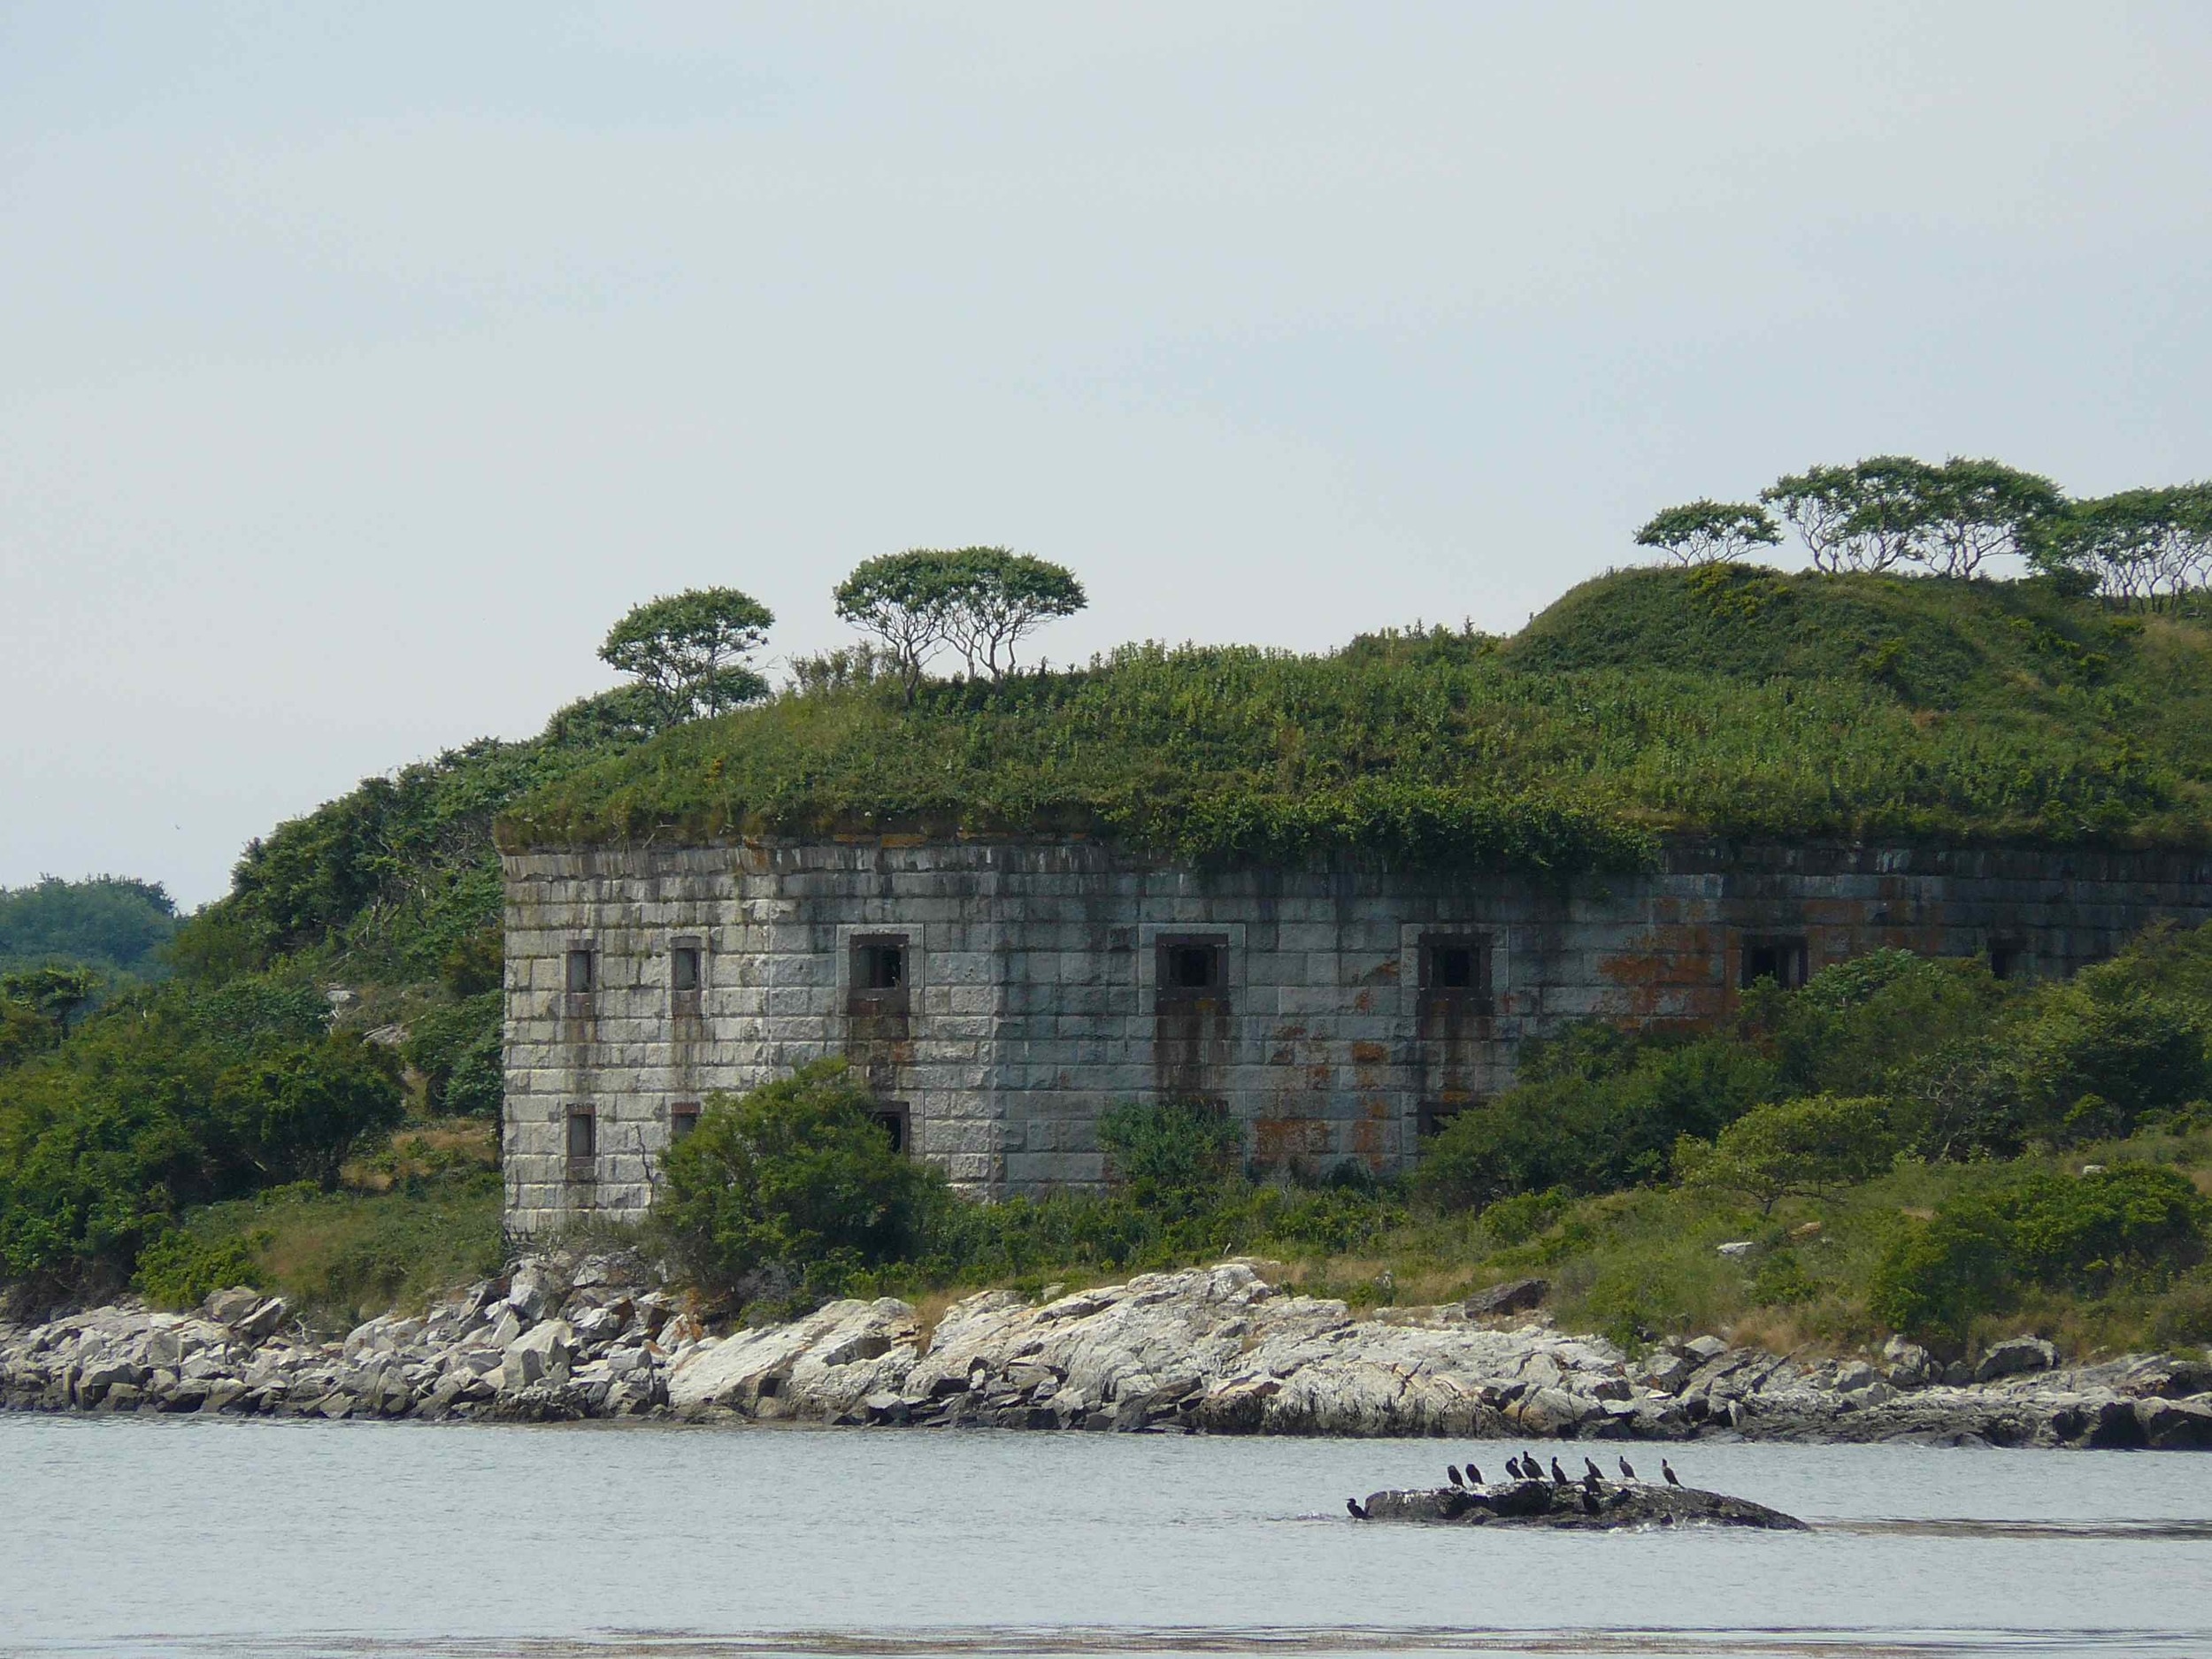 House_Island_July_2012_85_Ft_Scammell_East_Bastion.JPG